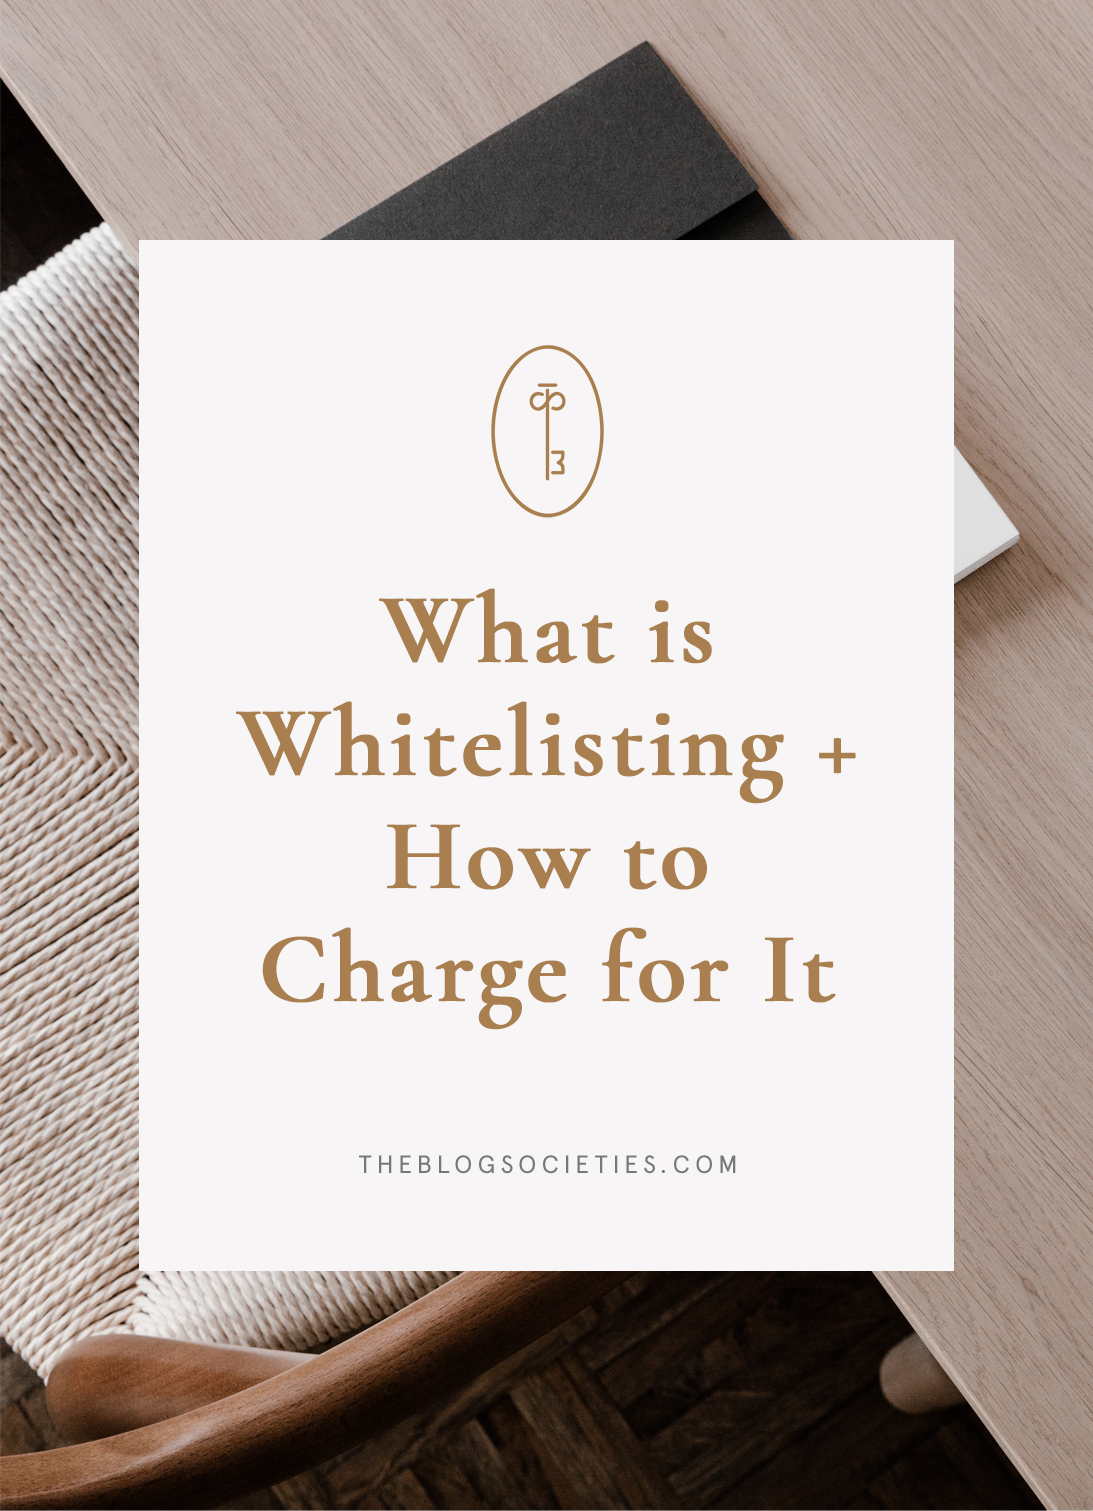 What is Whitelisting And How to Charge for It   The Blog Societies